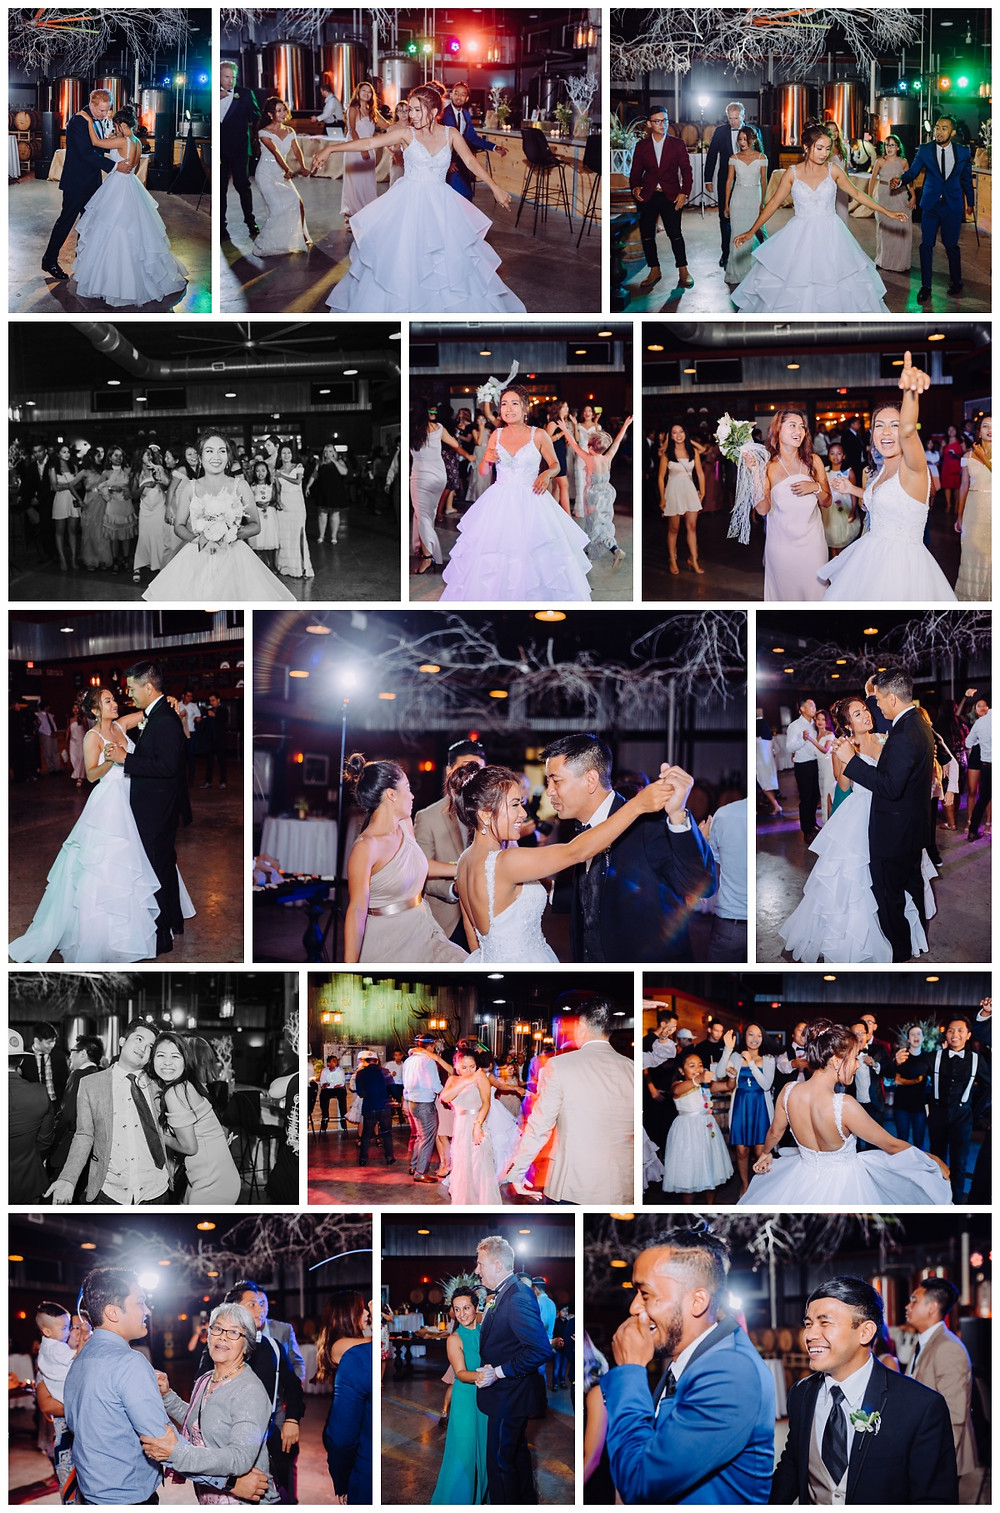 Dancing! - Vanish Brewery wedding Leesburg - Frederick Wedding Photographer - Katherine Elizabeth Photography